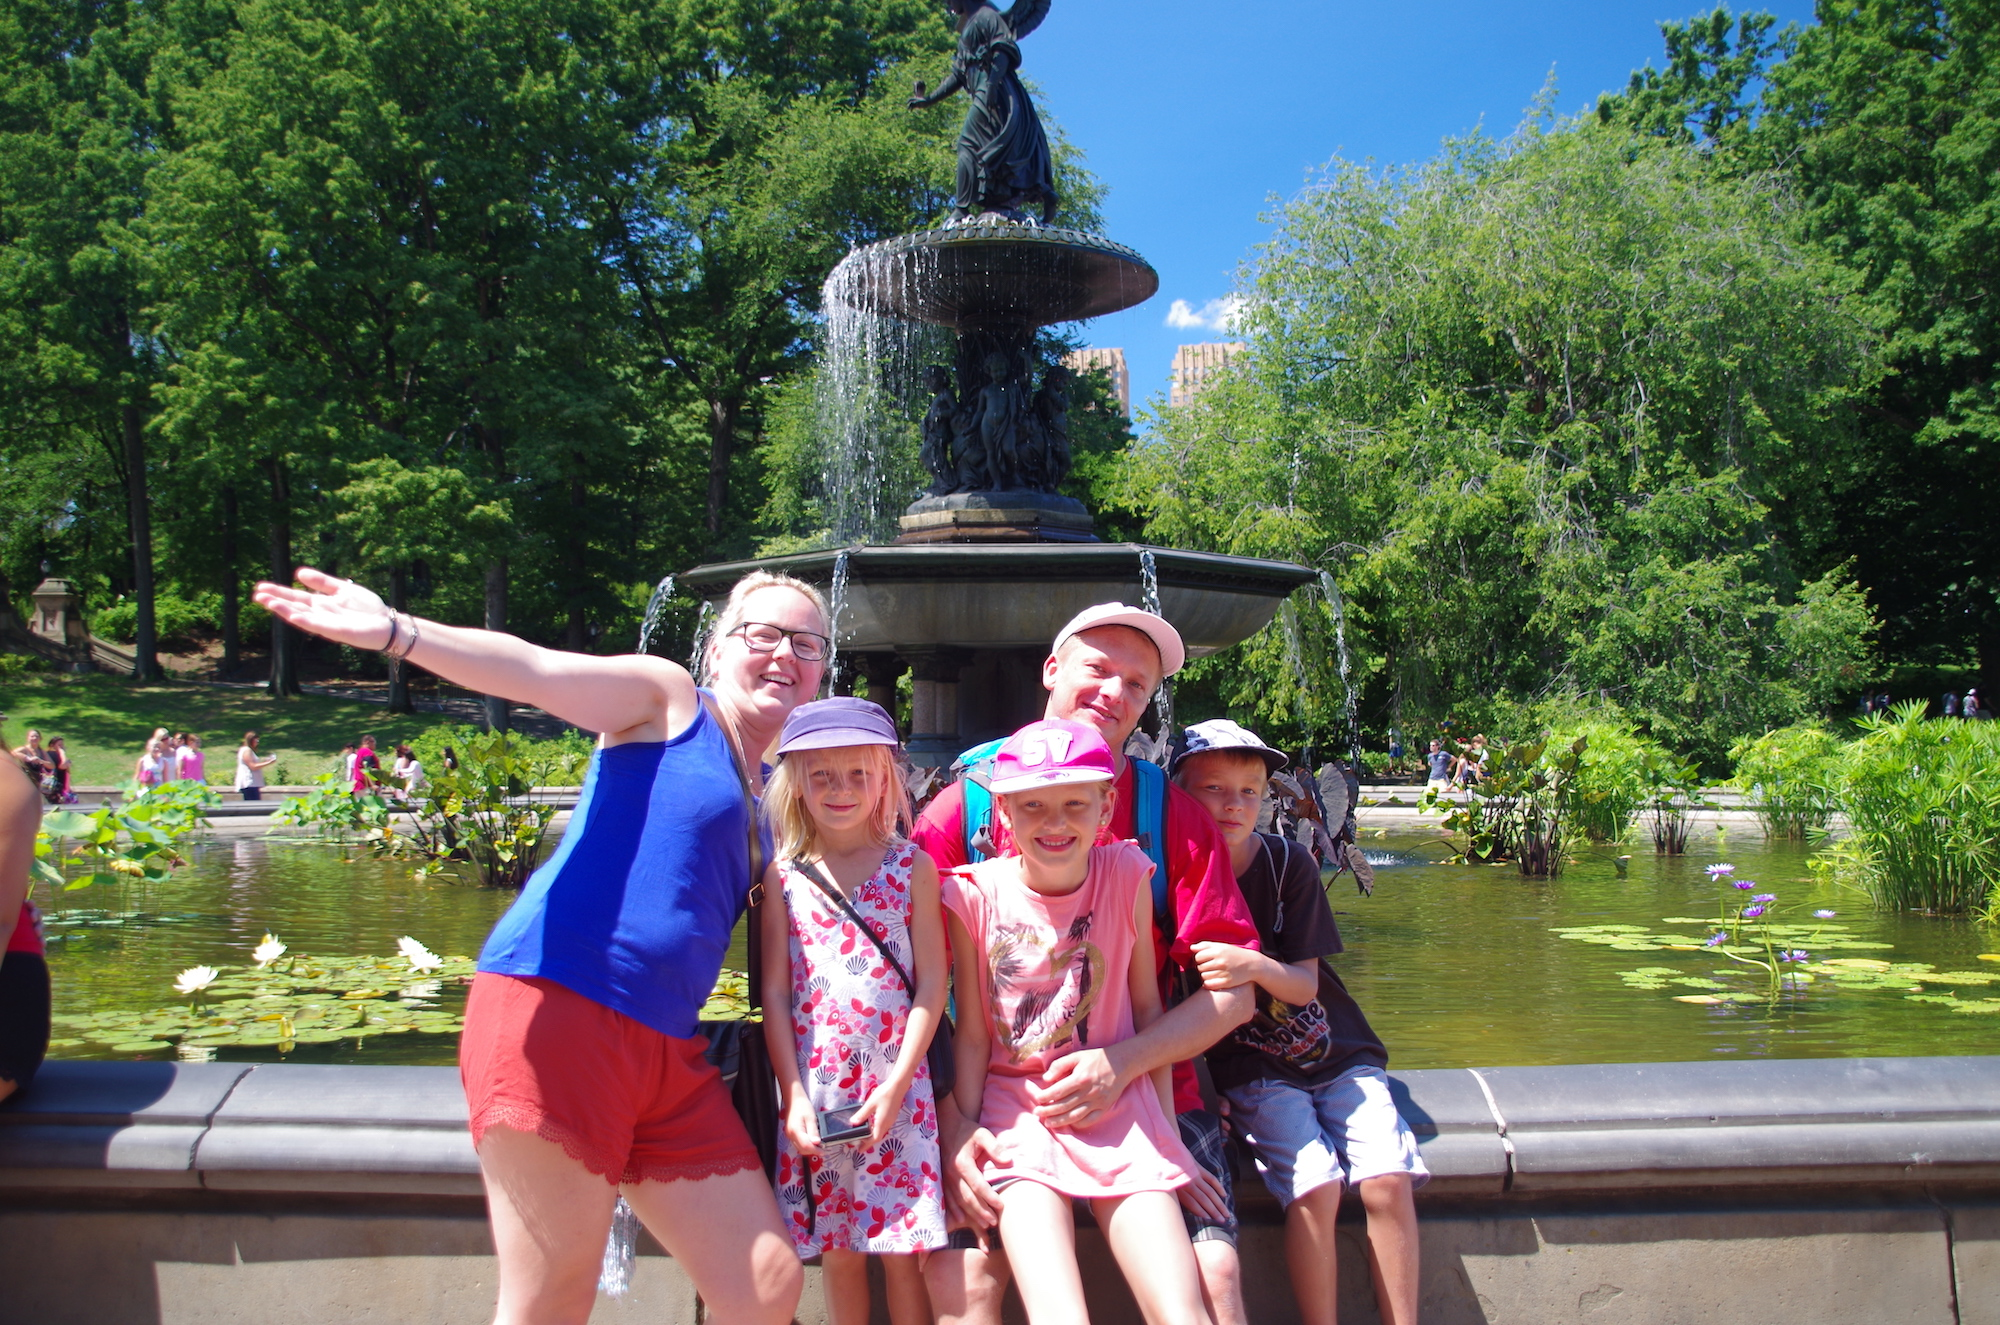 Nyc children tour oli your family guide olidaytours for Day trip to nyc with kids